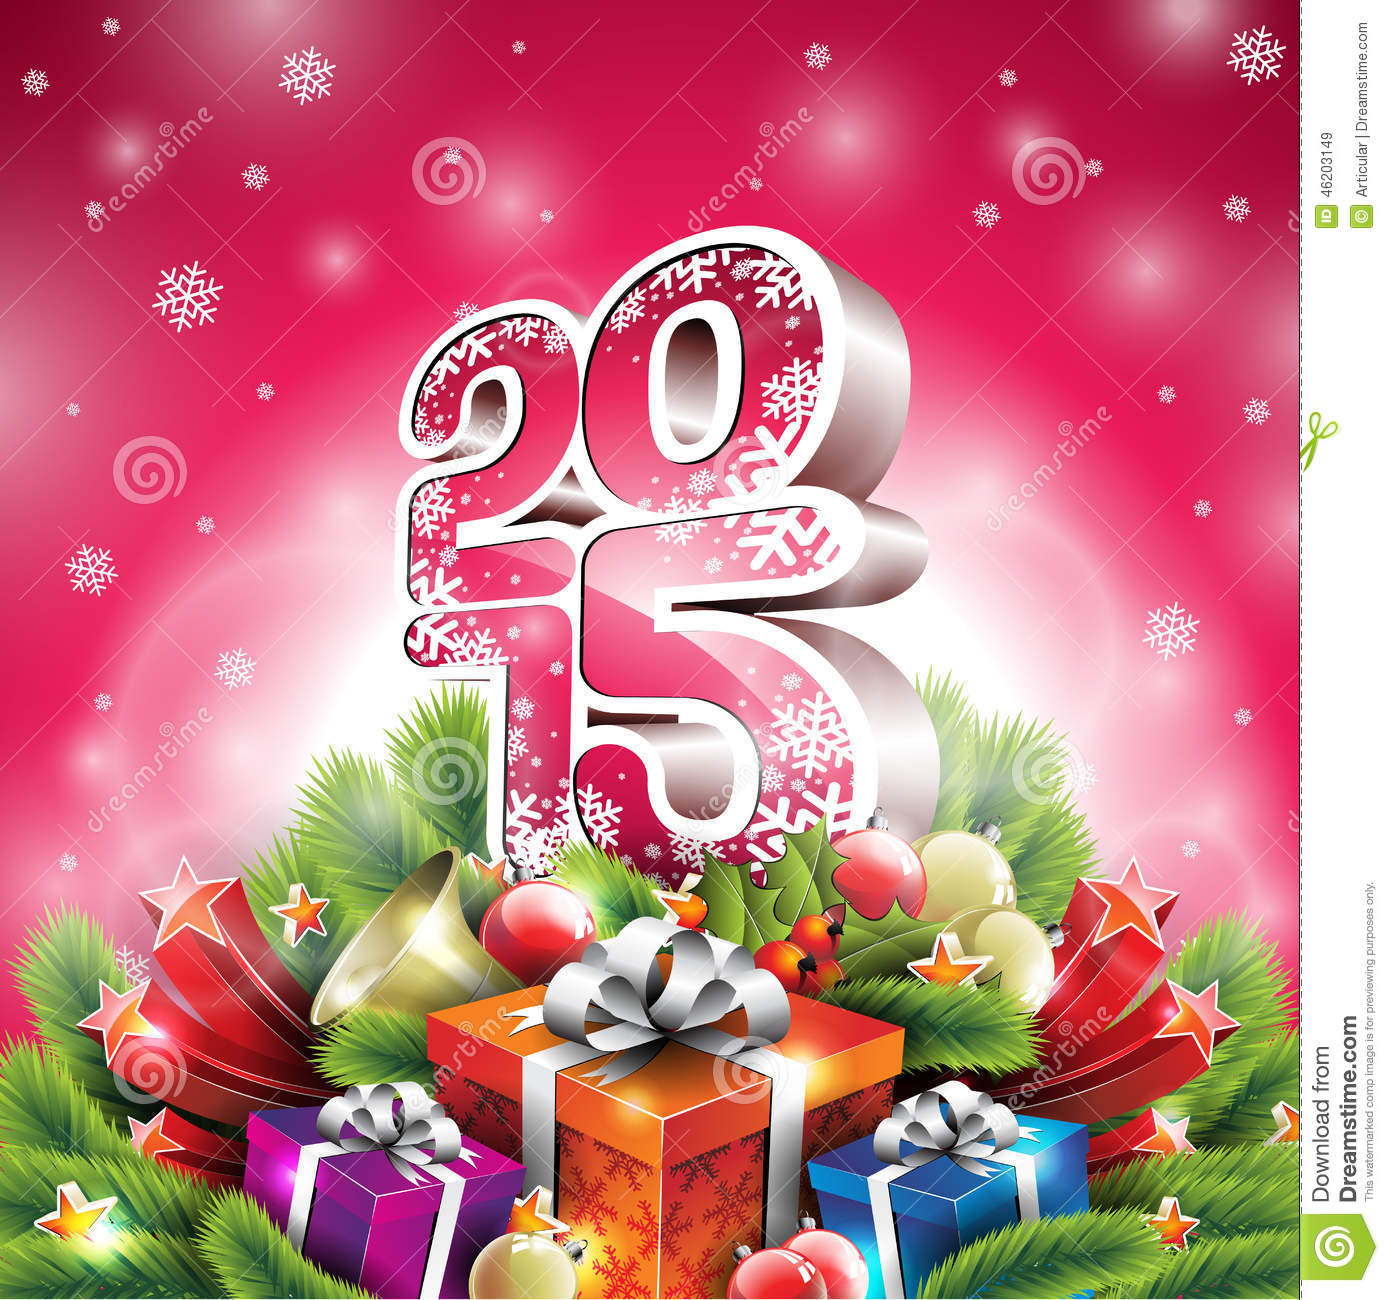 vector christmas illustration with 3d 2015 typographic design and shiny holiday elements on red background - Christmas Holiday 2015